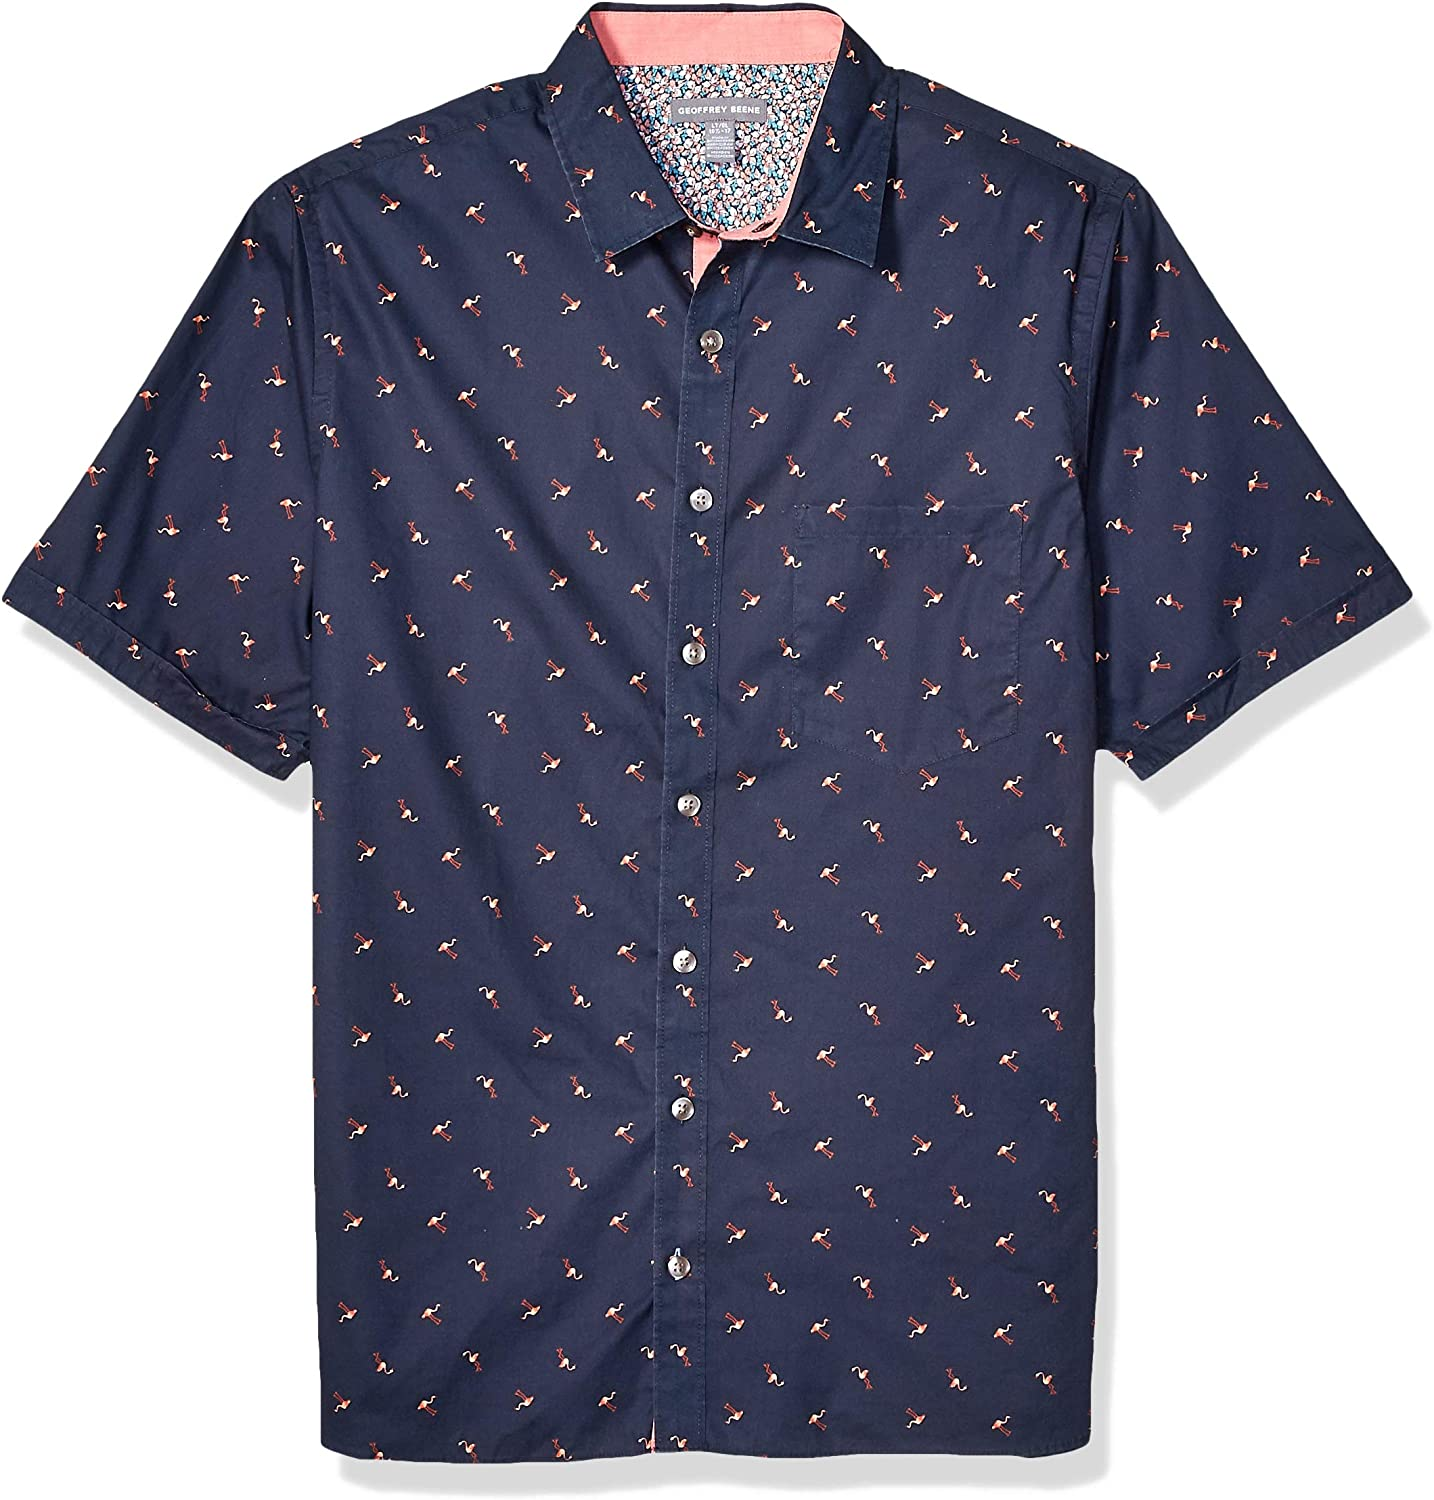 Geoffrey Beene Mens Big and Tall Easy Care Short Sleeve Button Down Shirt